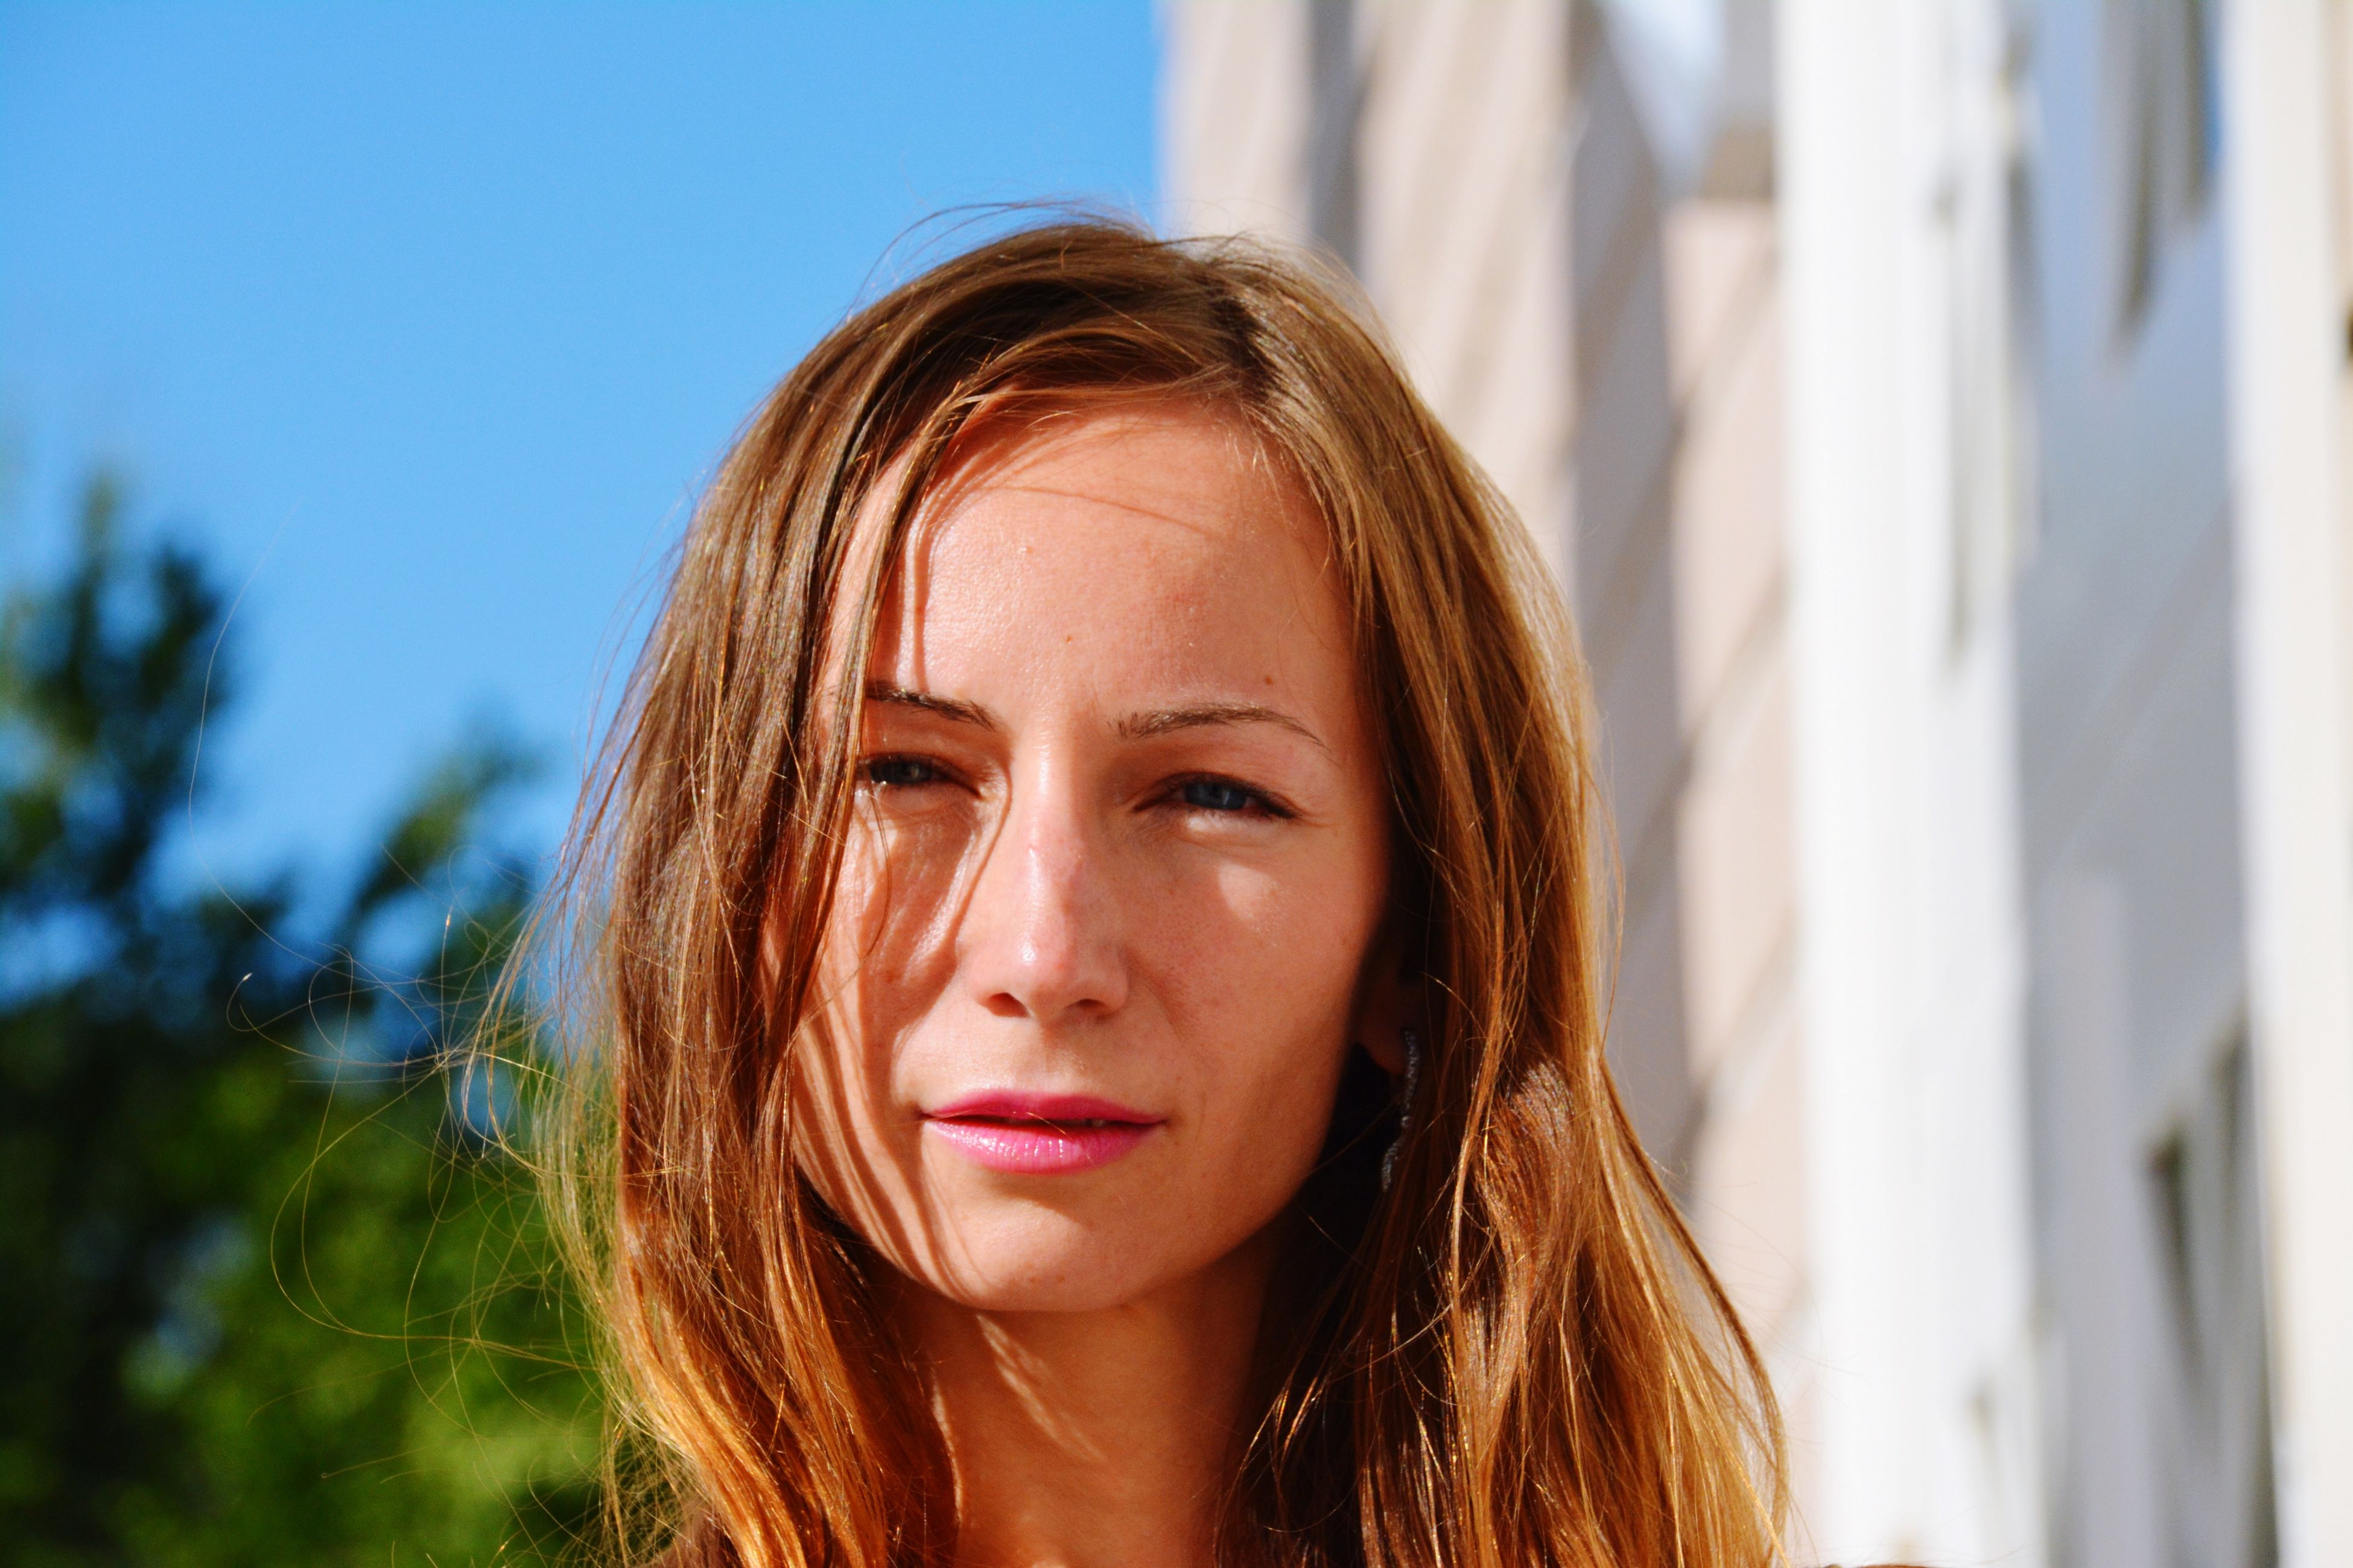 young adult, young women, person, long hair, looking at camera, portrait, headshot, front view, lifestyles, focus on foreground, smiling, leisure activity, close-up, beauty, head and shoulders, brown hair, blond hair